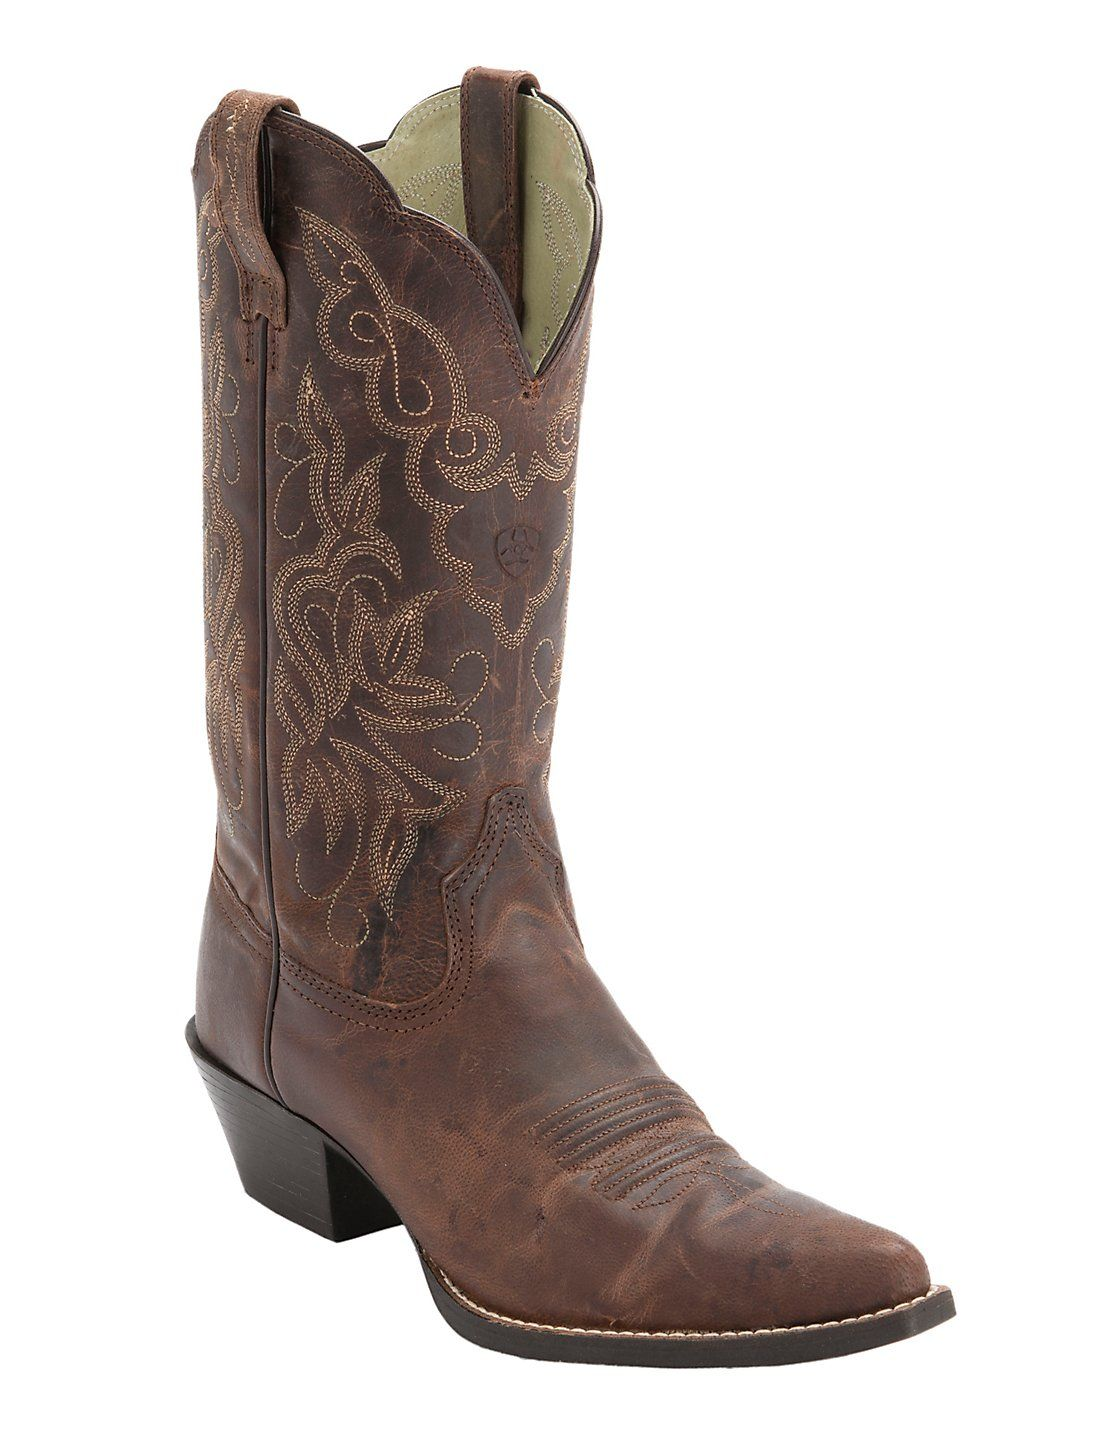 49cbb80ce86 Ariat Women's Sassy Brown Heritage J-Toe Western Boots | Cavender's ...